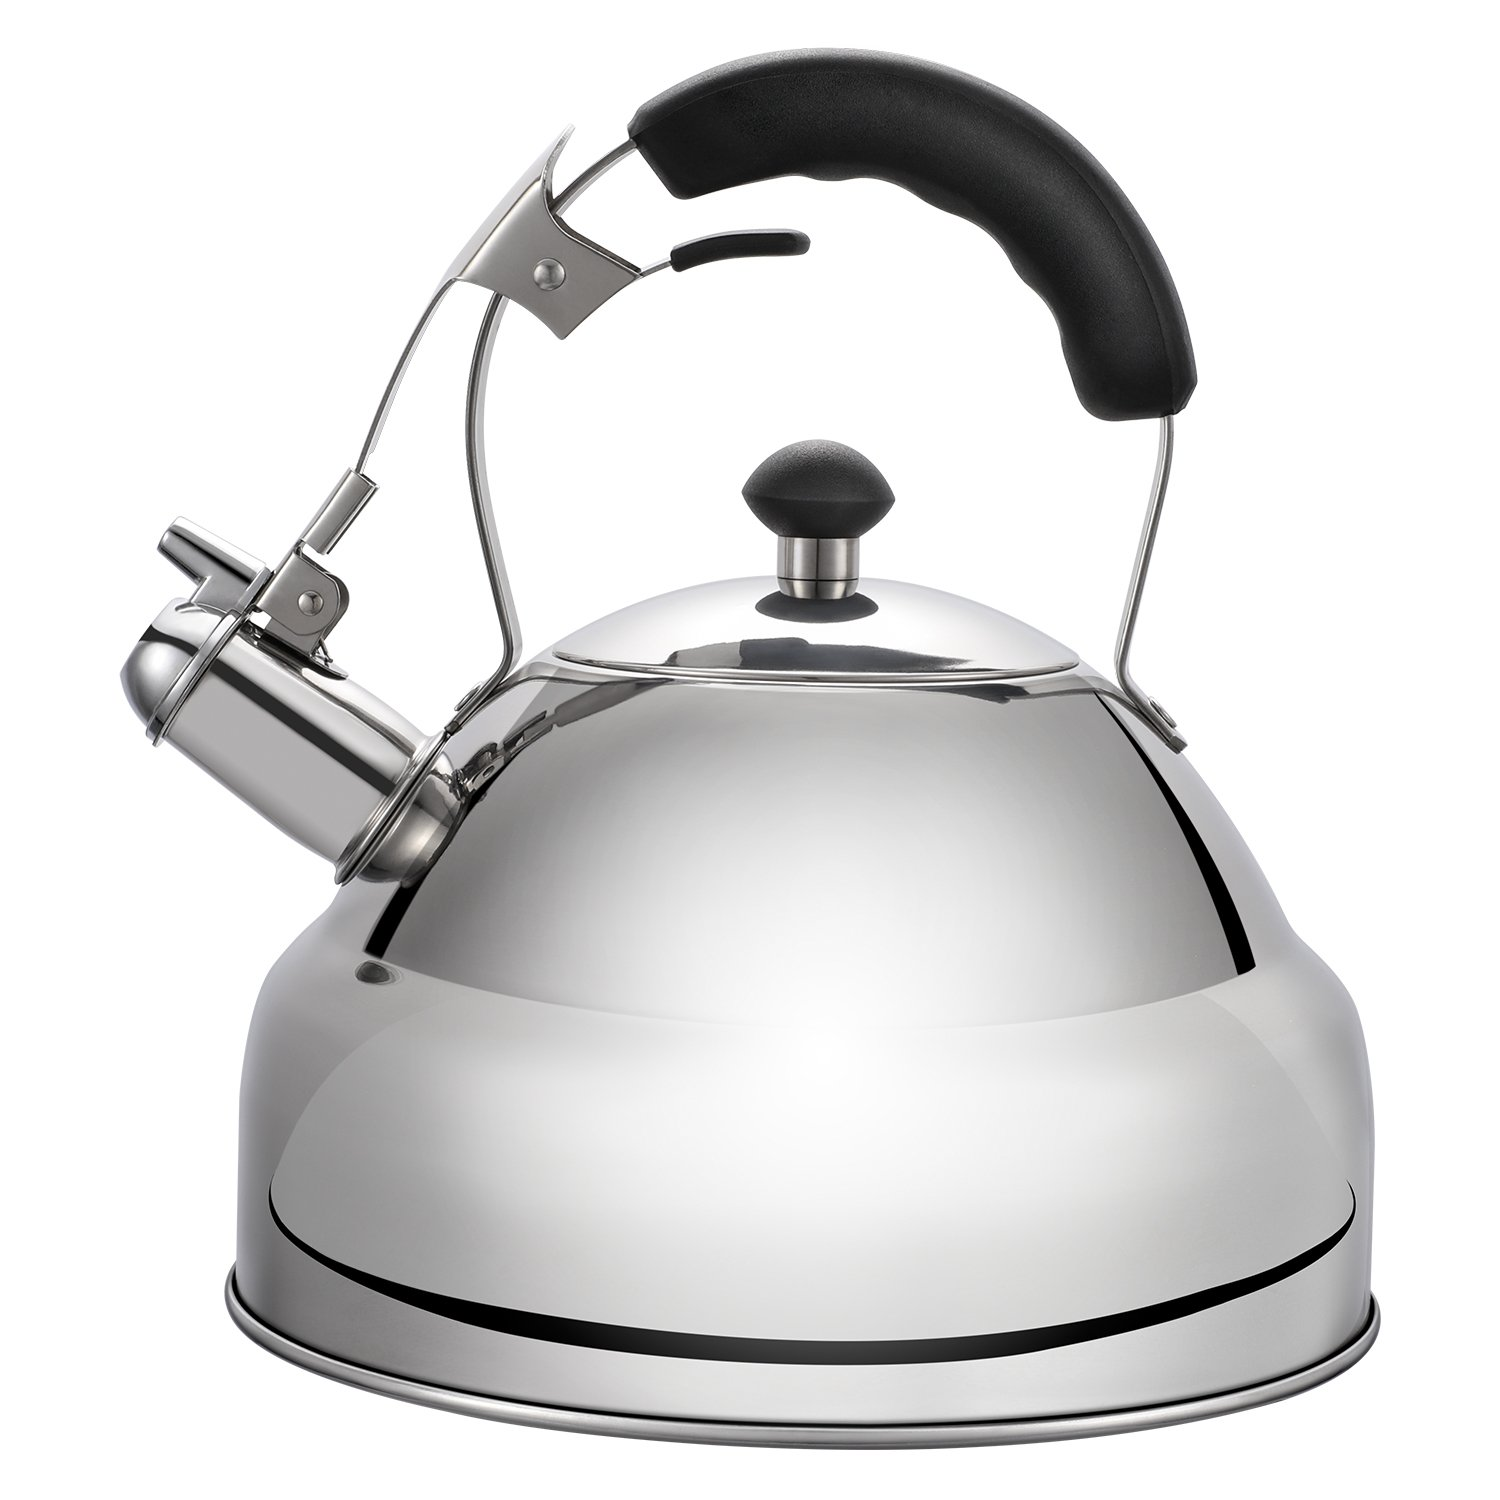 Hiware Good Whistling Tea Kettle for Stovetop with Layered Capsule Bottom Silicone Handle - Rust Resistant Stainless Steel Mirror Finish - 2.8 Quart/FREE Silicone Trivet Mat Included